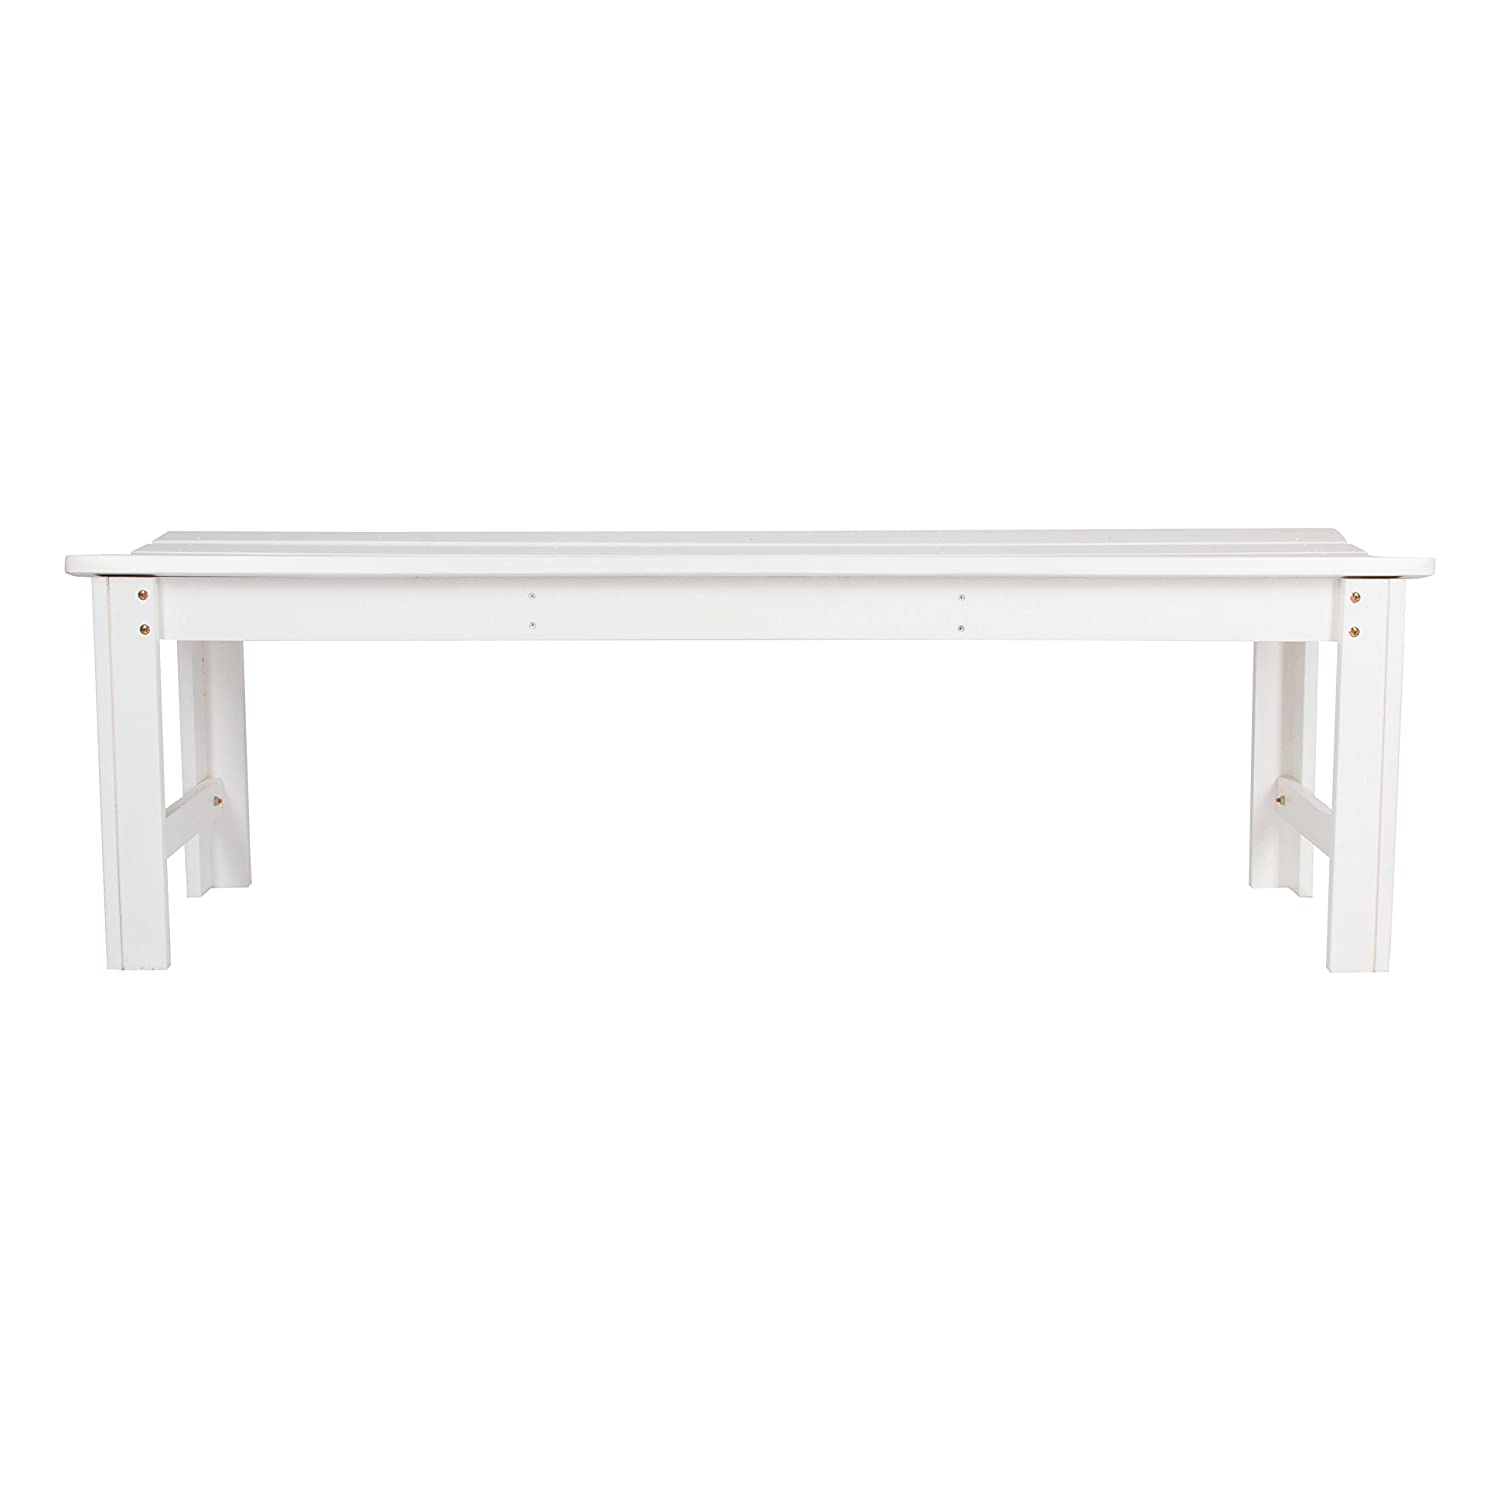 Shine Company Inc. 4205WT Backless Garden Bench, 5 Ft, White